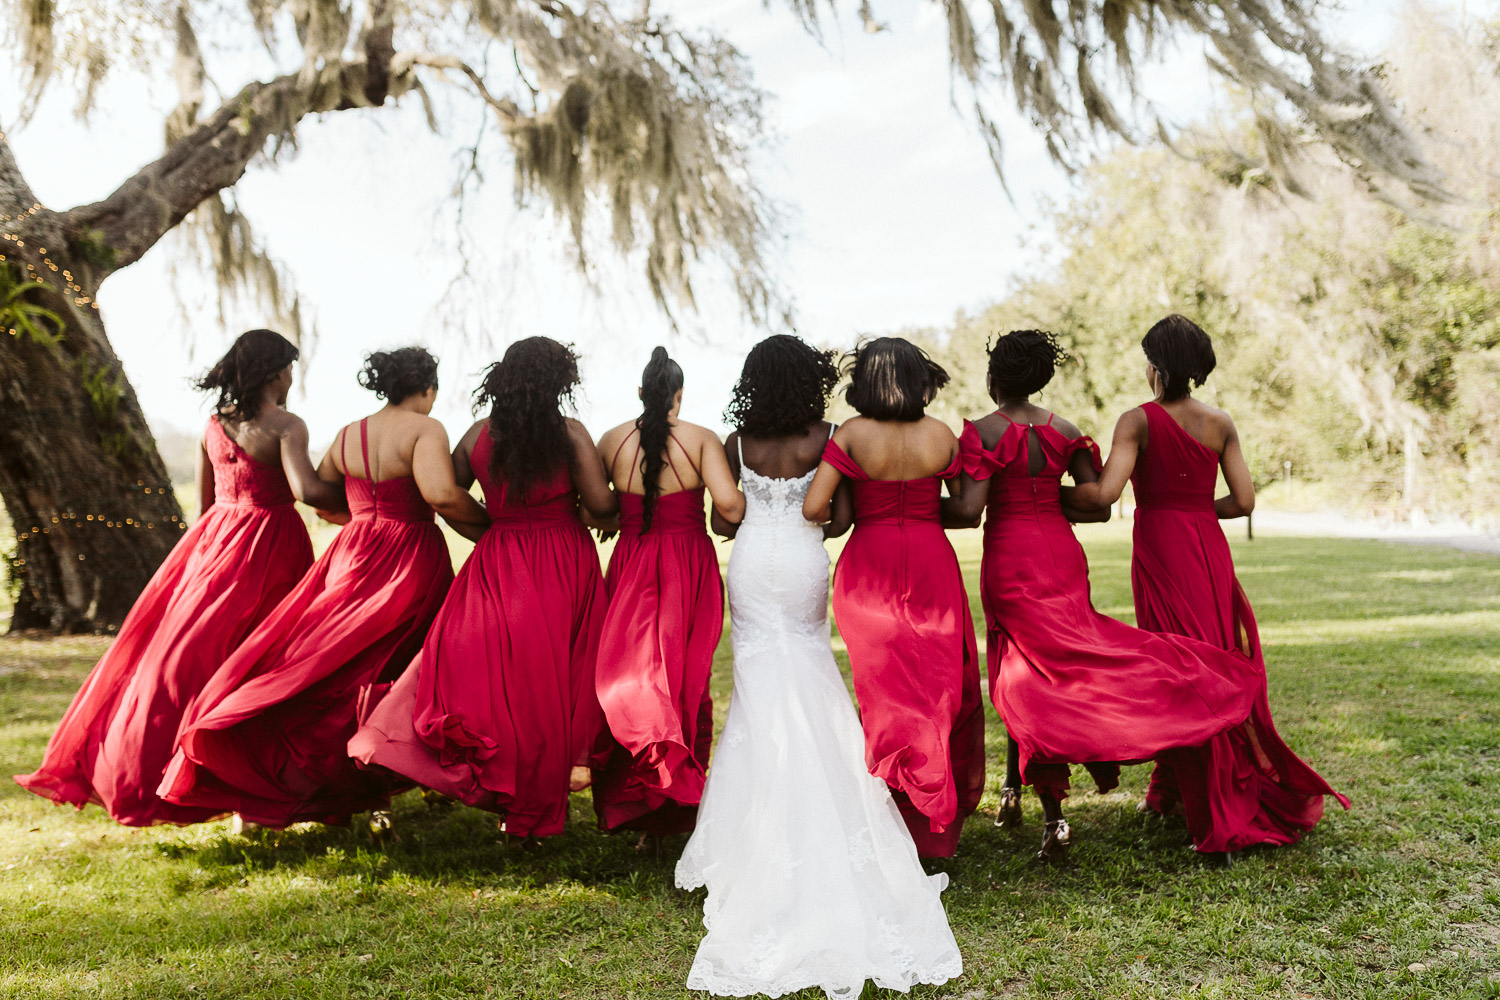 bridesmaids wearing long red dresses